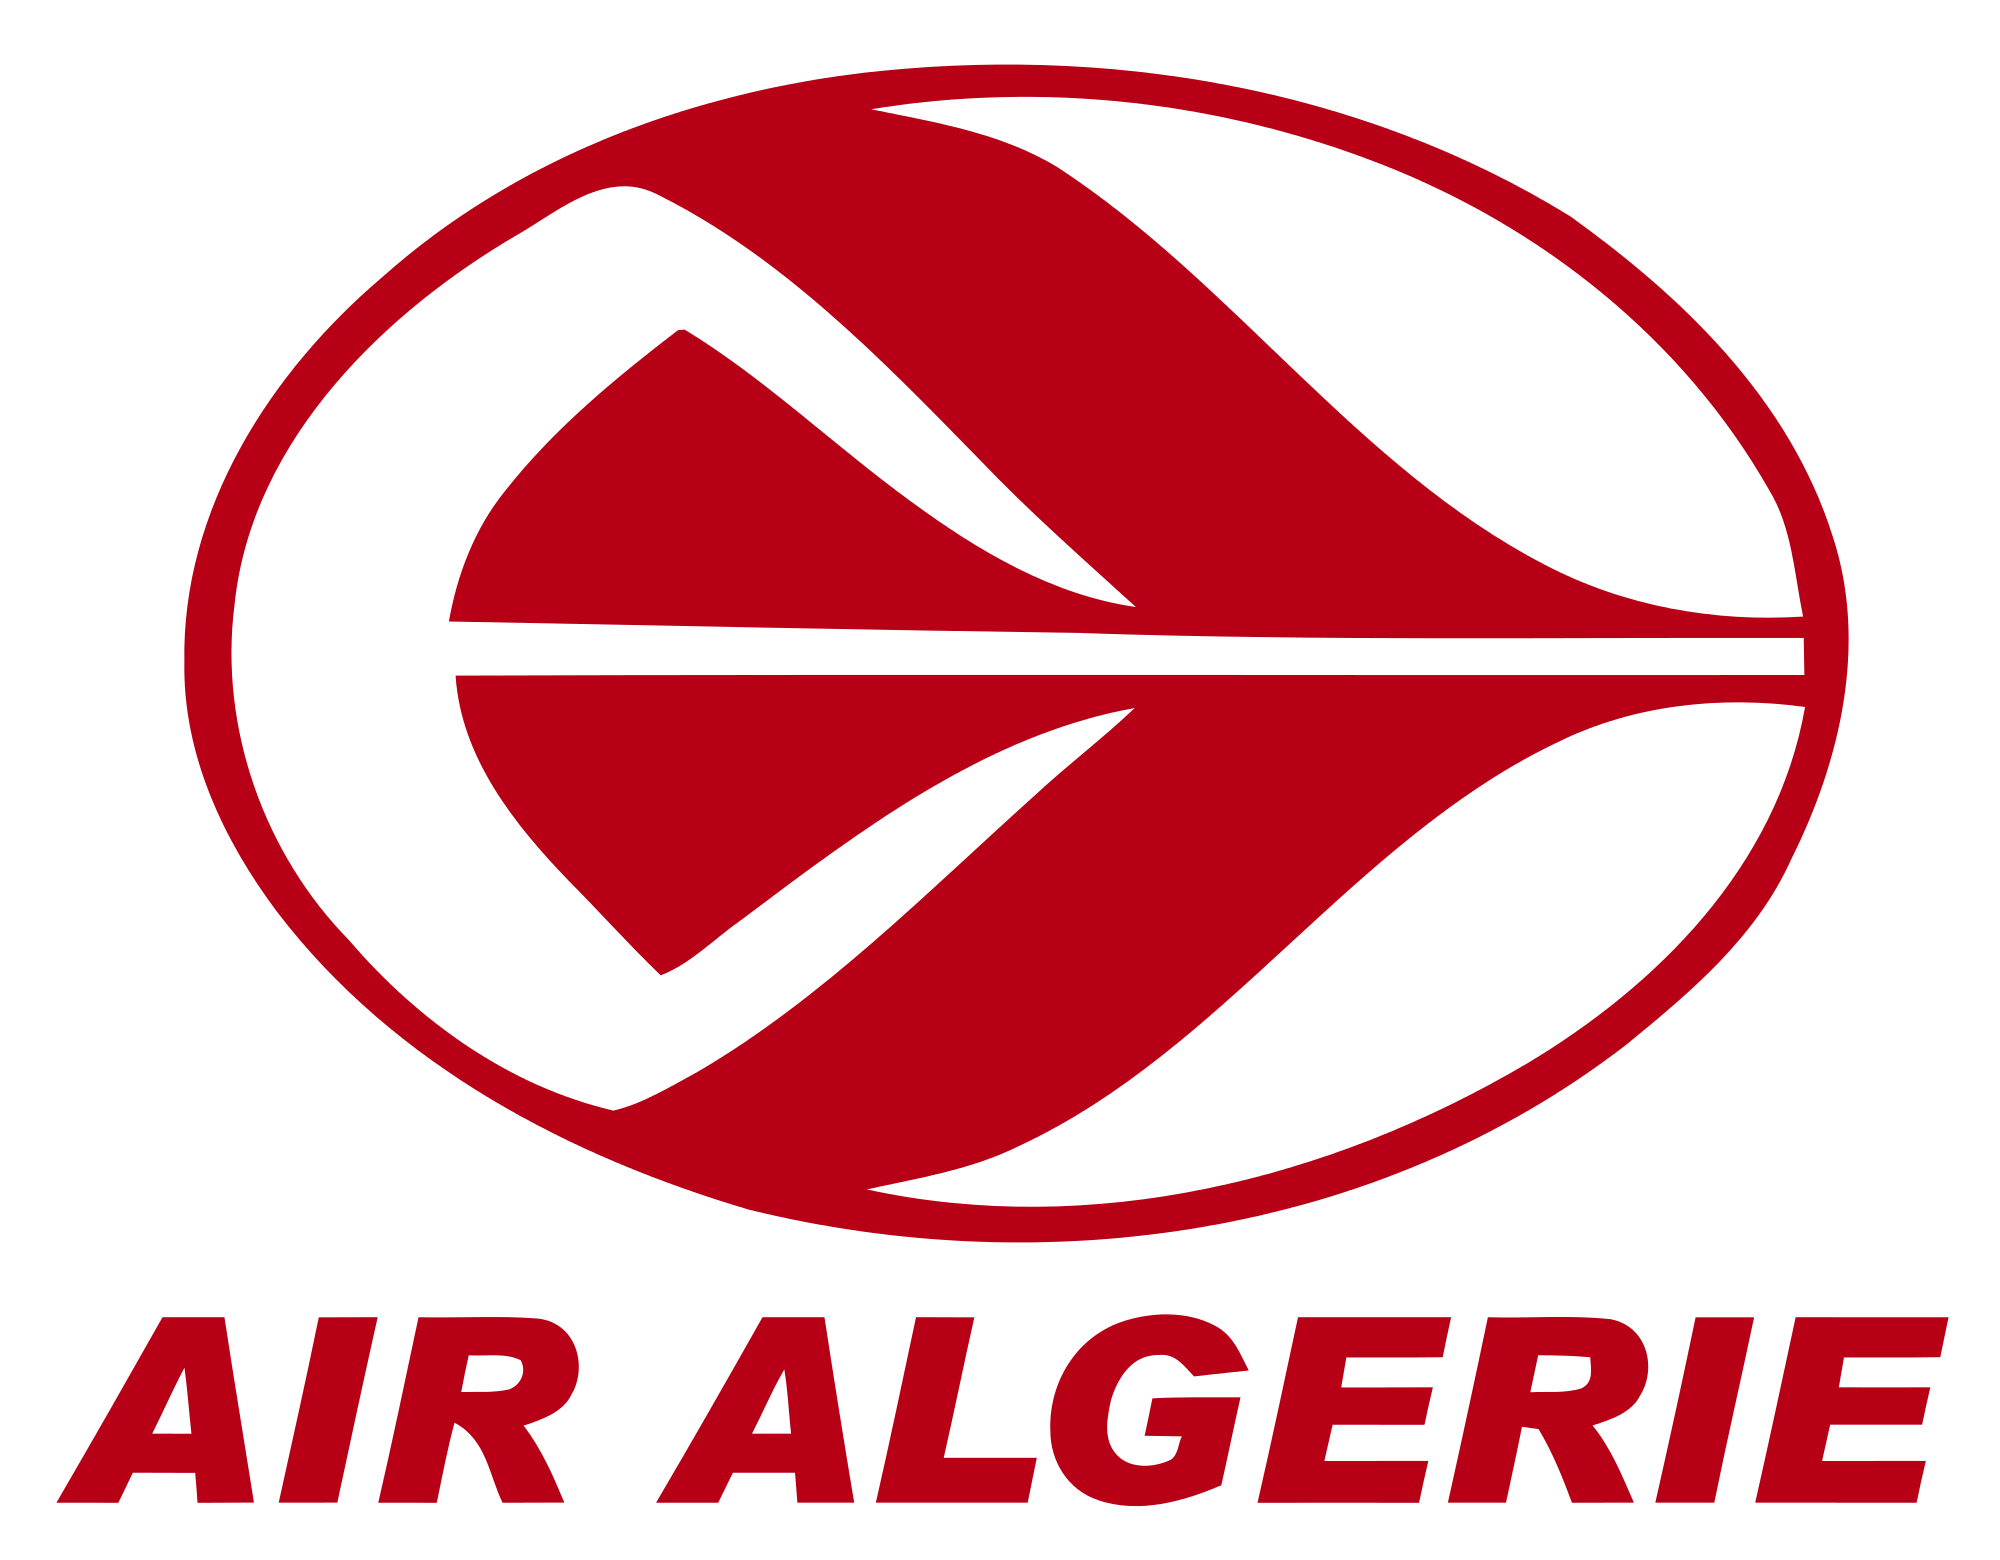 R servation de vol air alg rie par t l phone for Air algerie reservation vol interieur